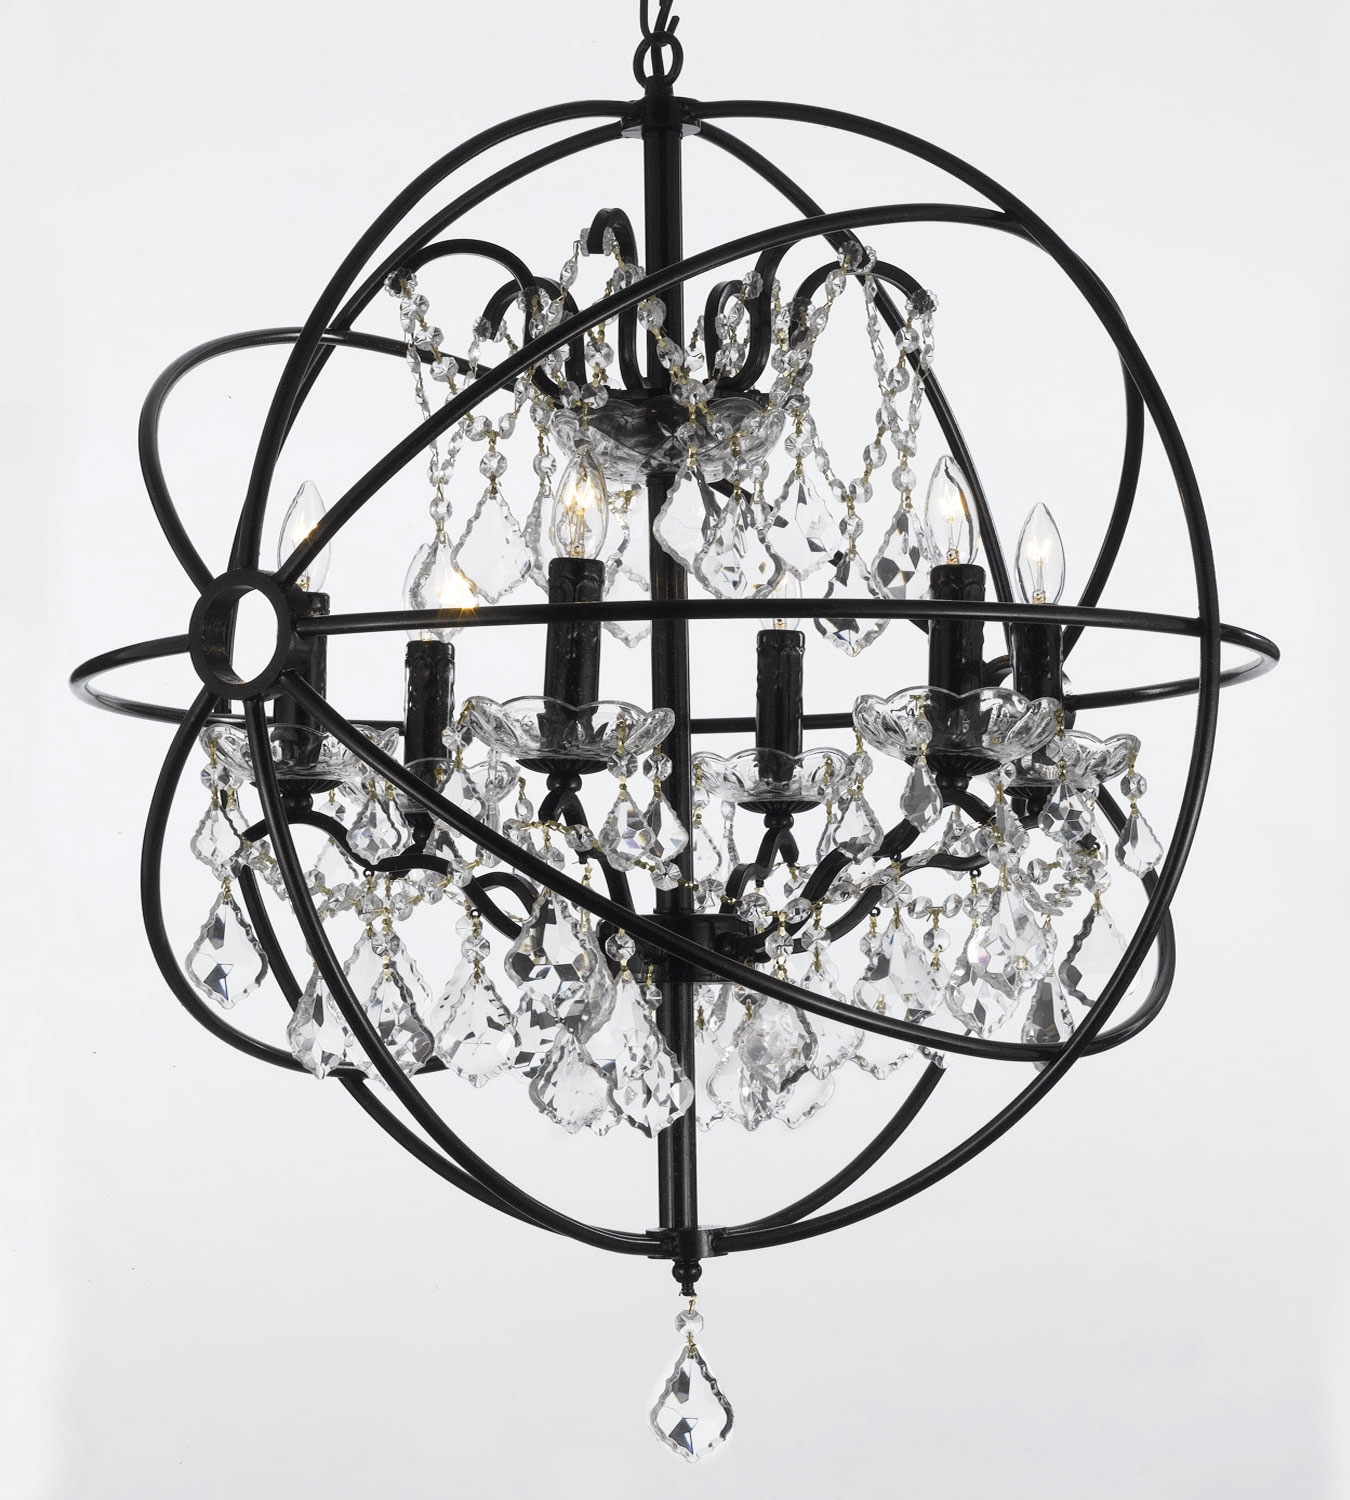 Chandelier Astonishing Iron Orb Chandelier Ideas Amazing Iron With Regard To Metal Ball Candle Chandeliers (Image 14 of 25)